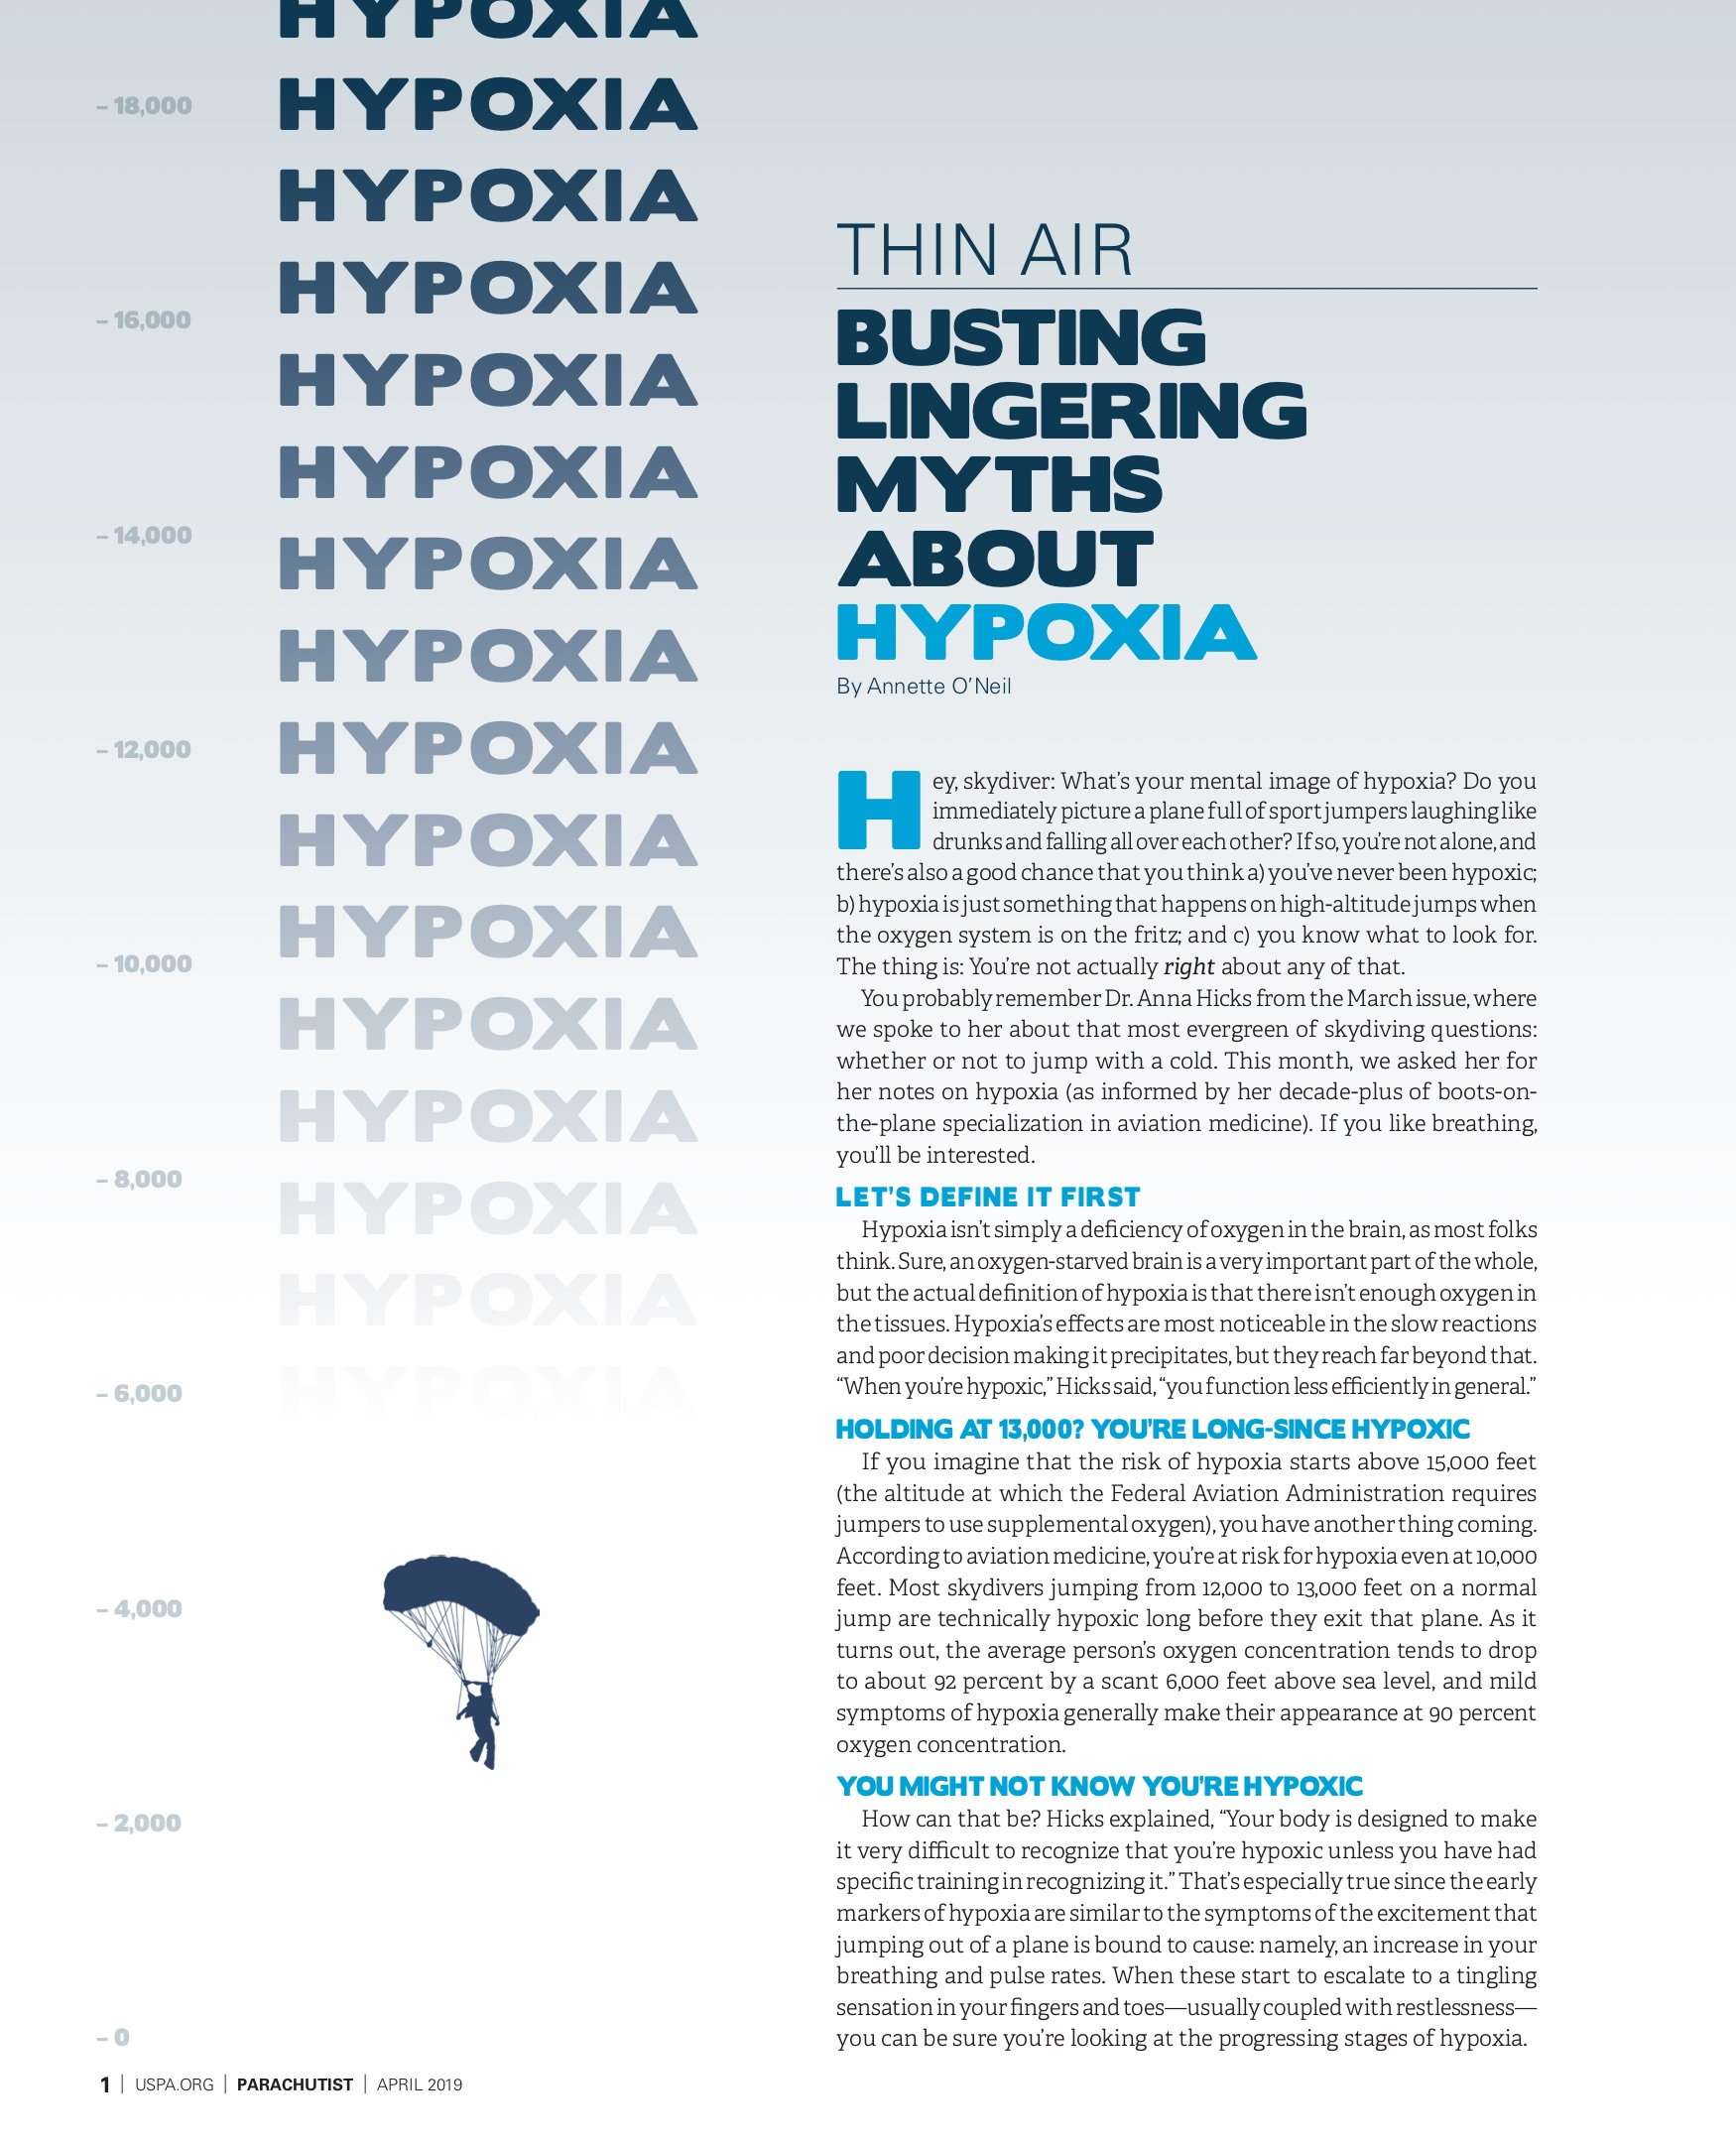 Thin Air: Busting Lingering Myths About Hypoxia